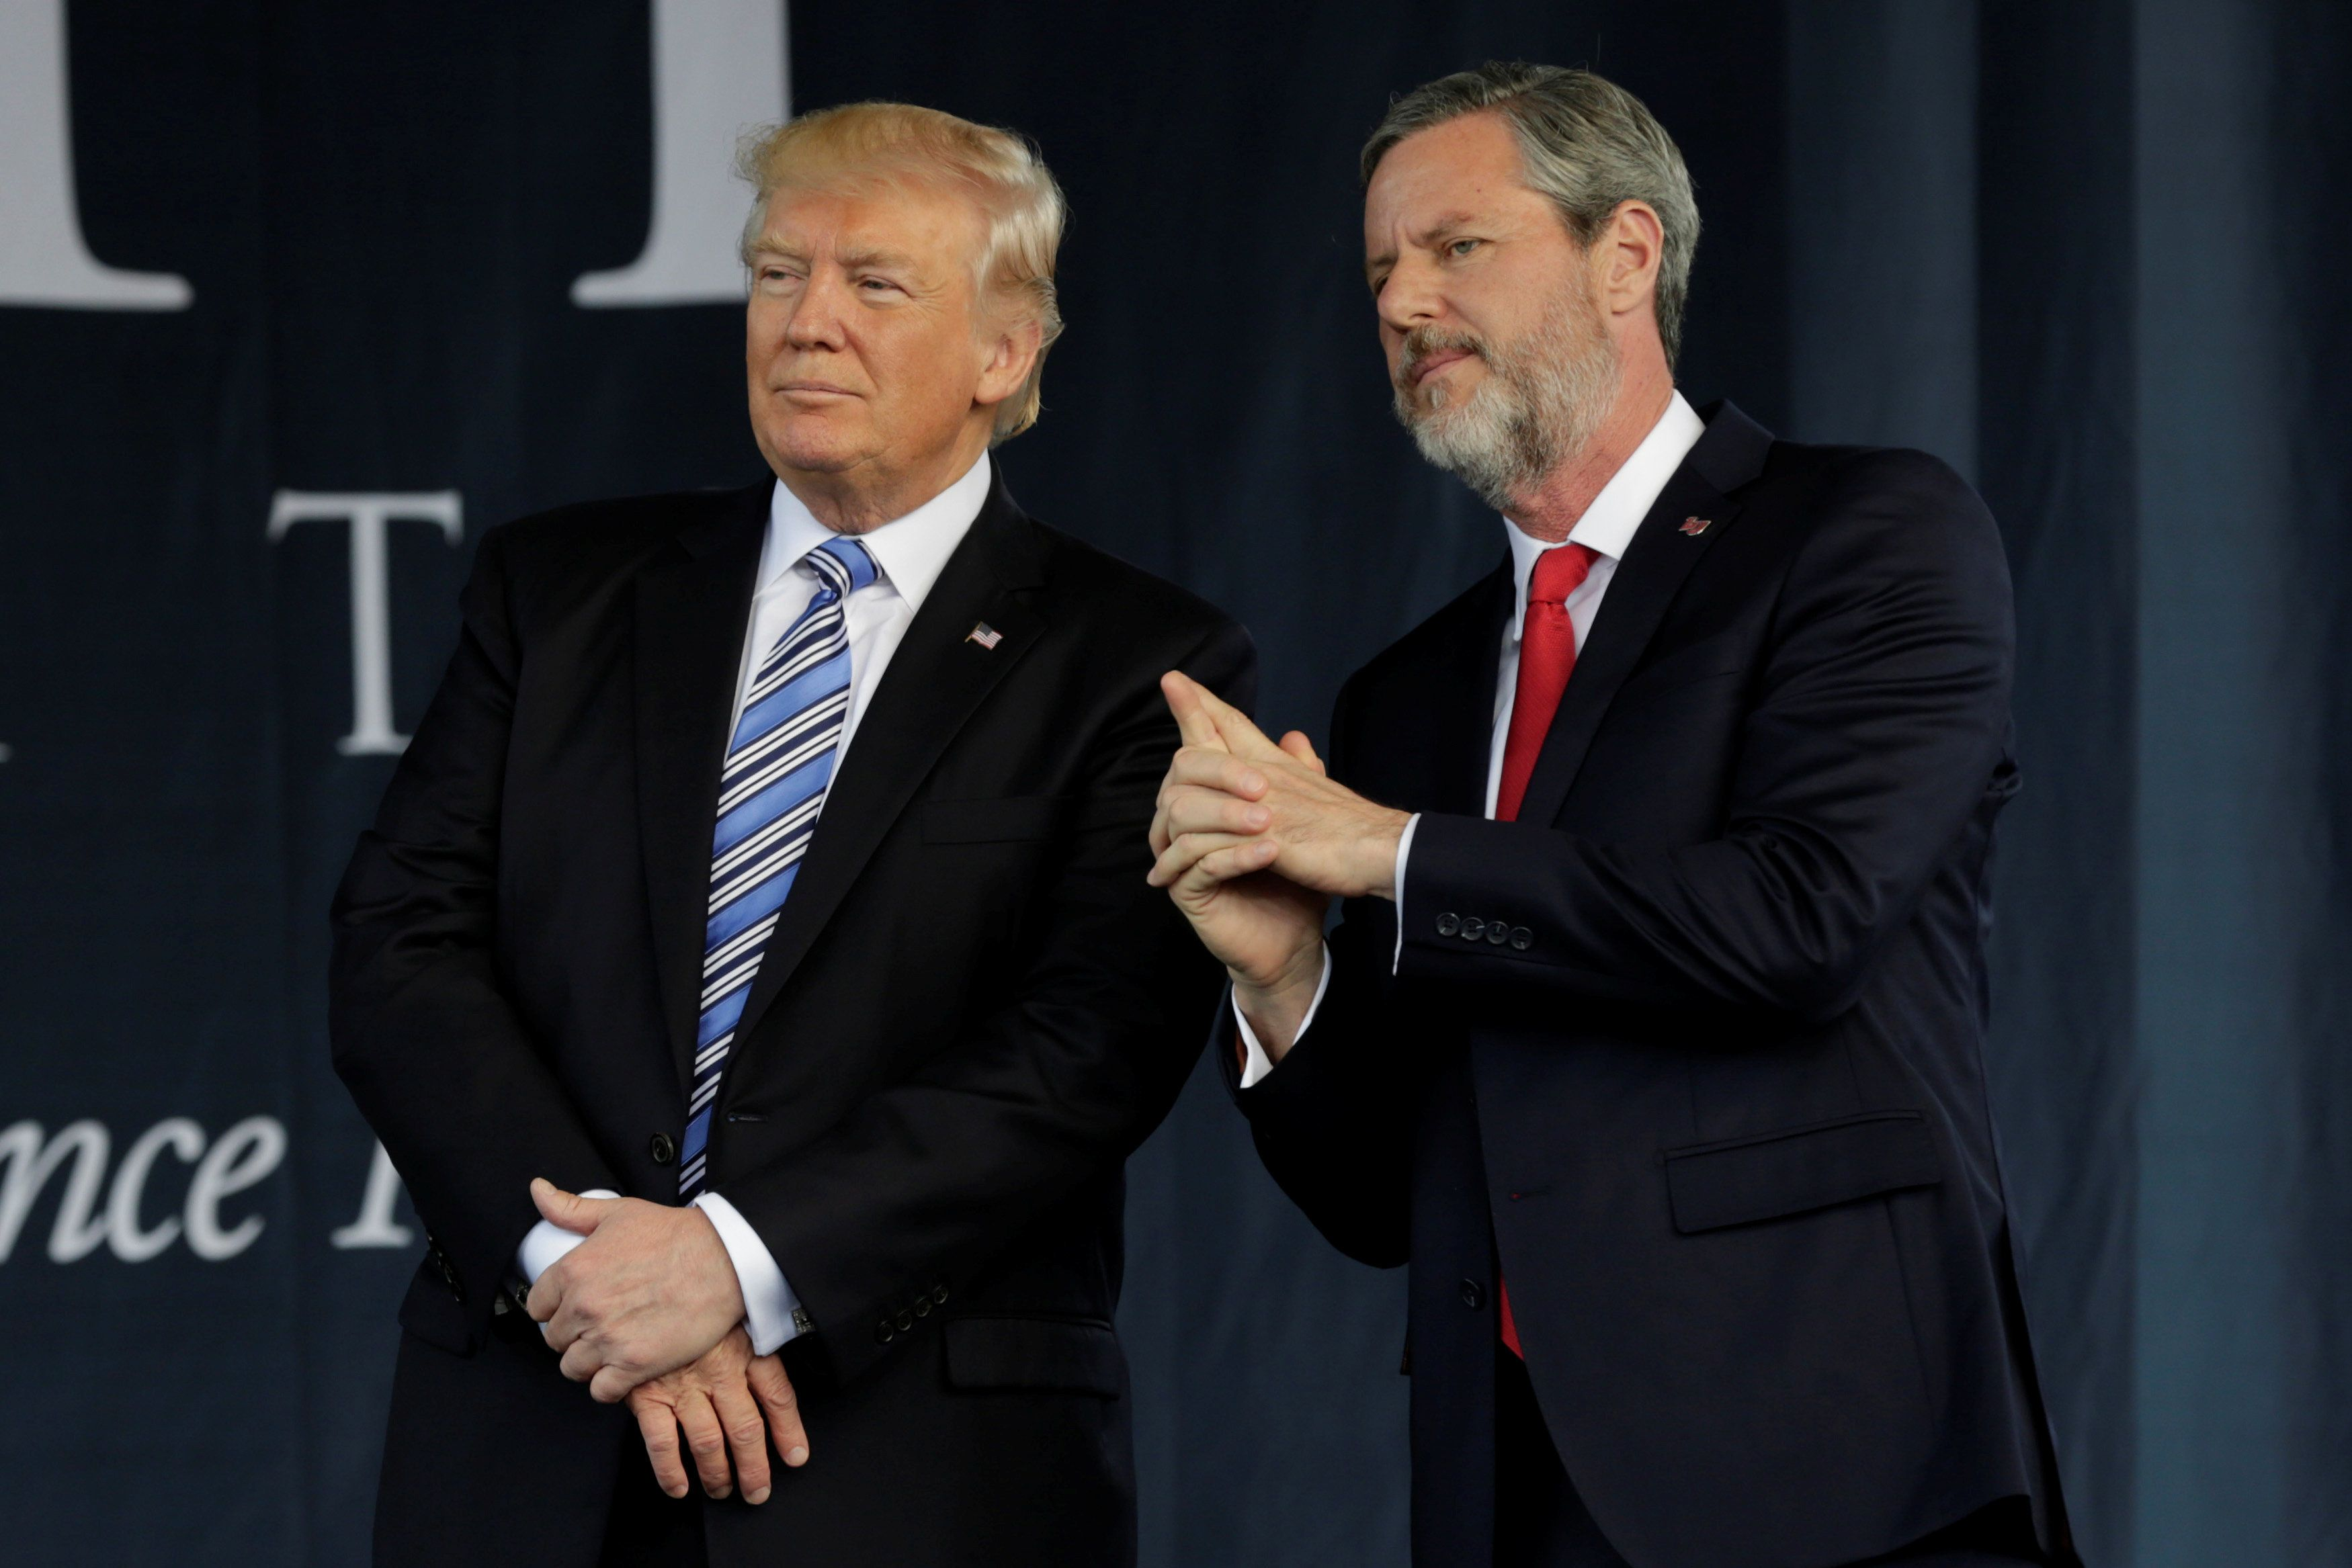 U.S. President Donald Trump (L) stands with Liberty University President Jerry Falwell, Jr. after delivering keynote address at commencement in Lynchburg, Virginia, U.S., May 13, 2017. REUTERS/Yuri Gripas